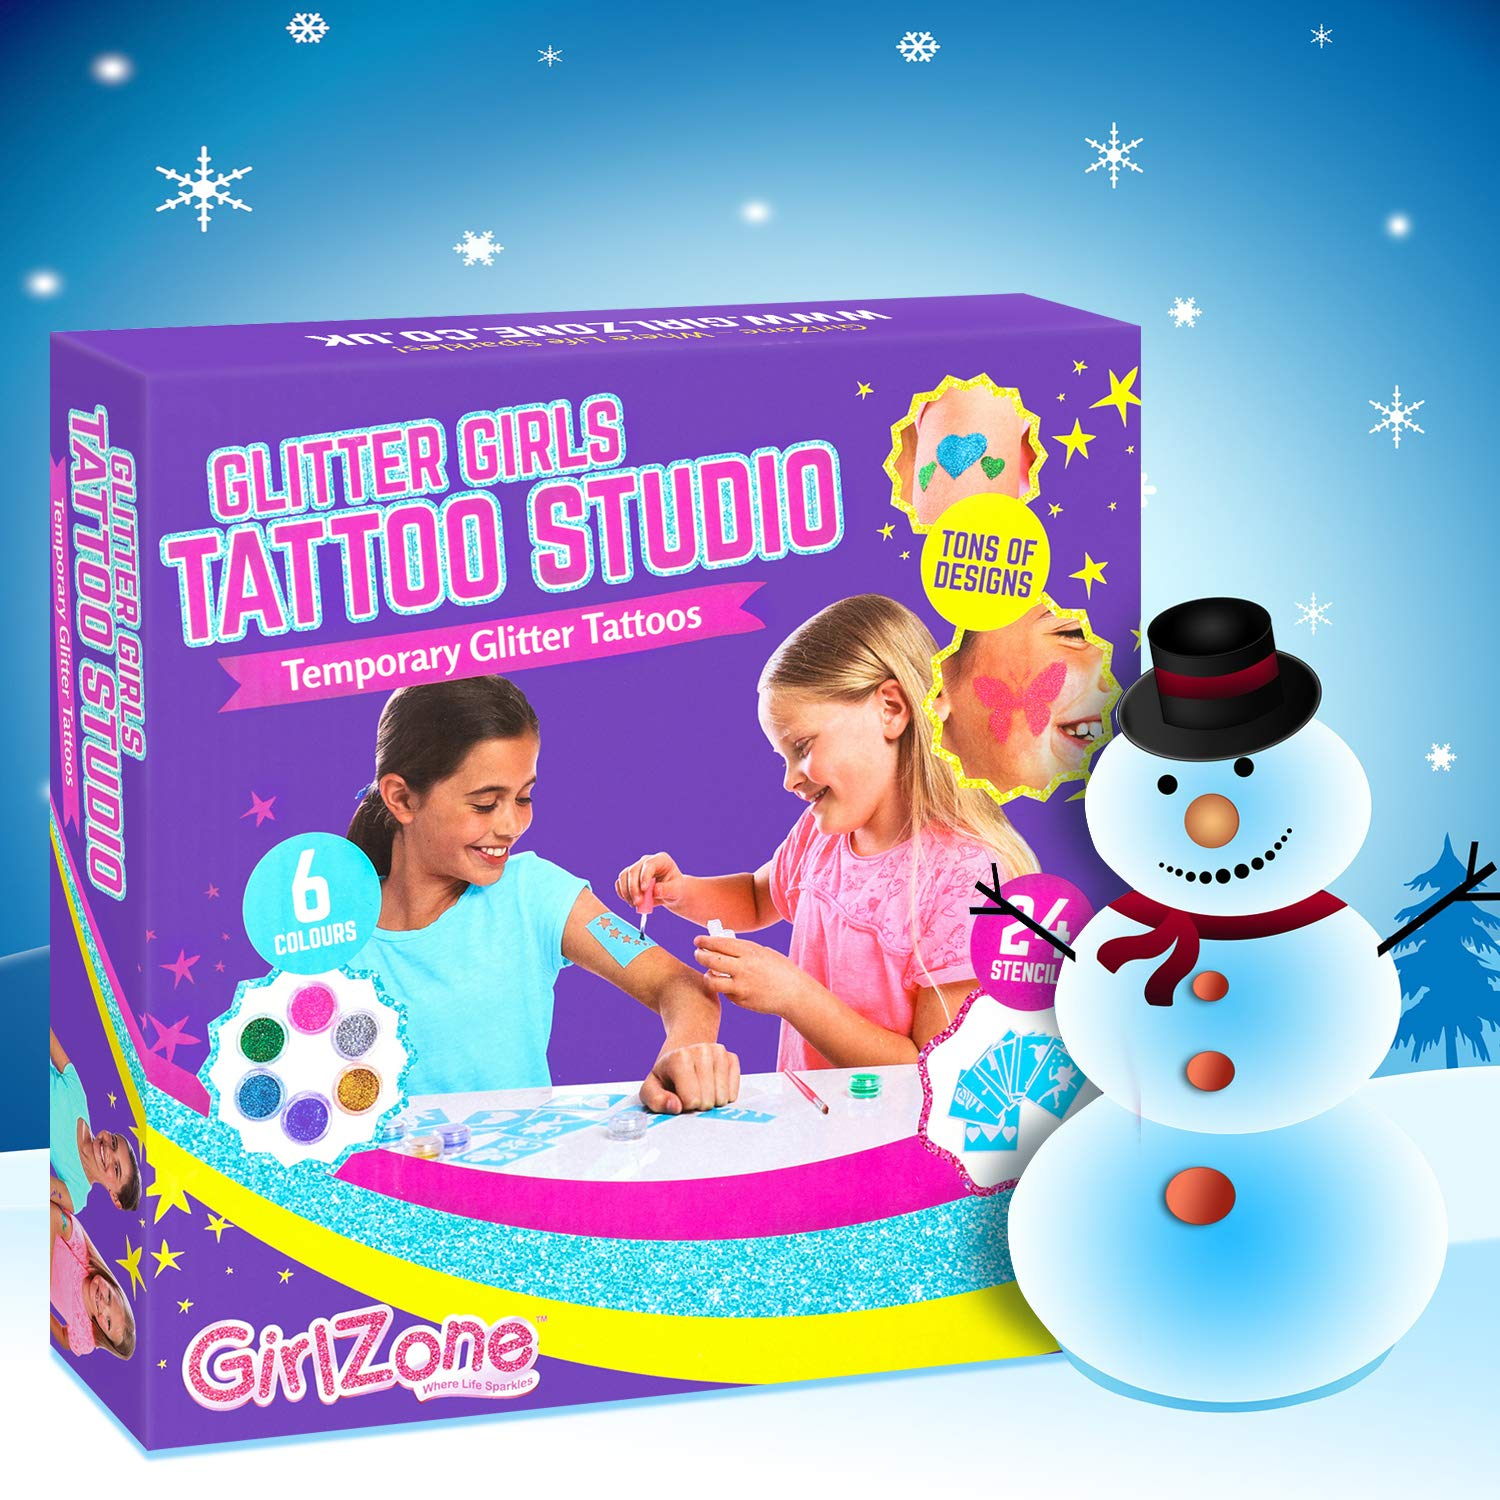 amazoncom girlzone temporary glitter tattoos kit including 33 pieces best christmas birthday present idea for girls age 6 7 8 9 years old toys games